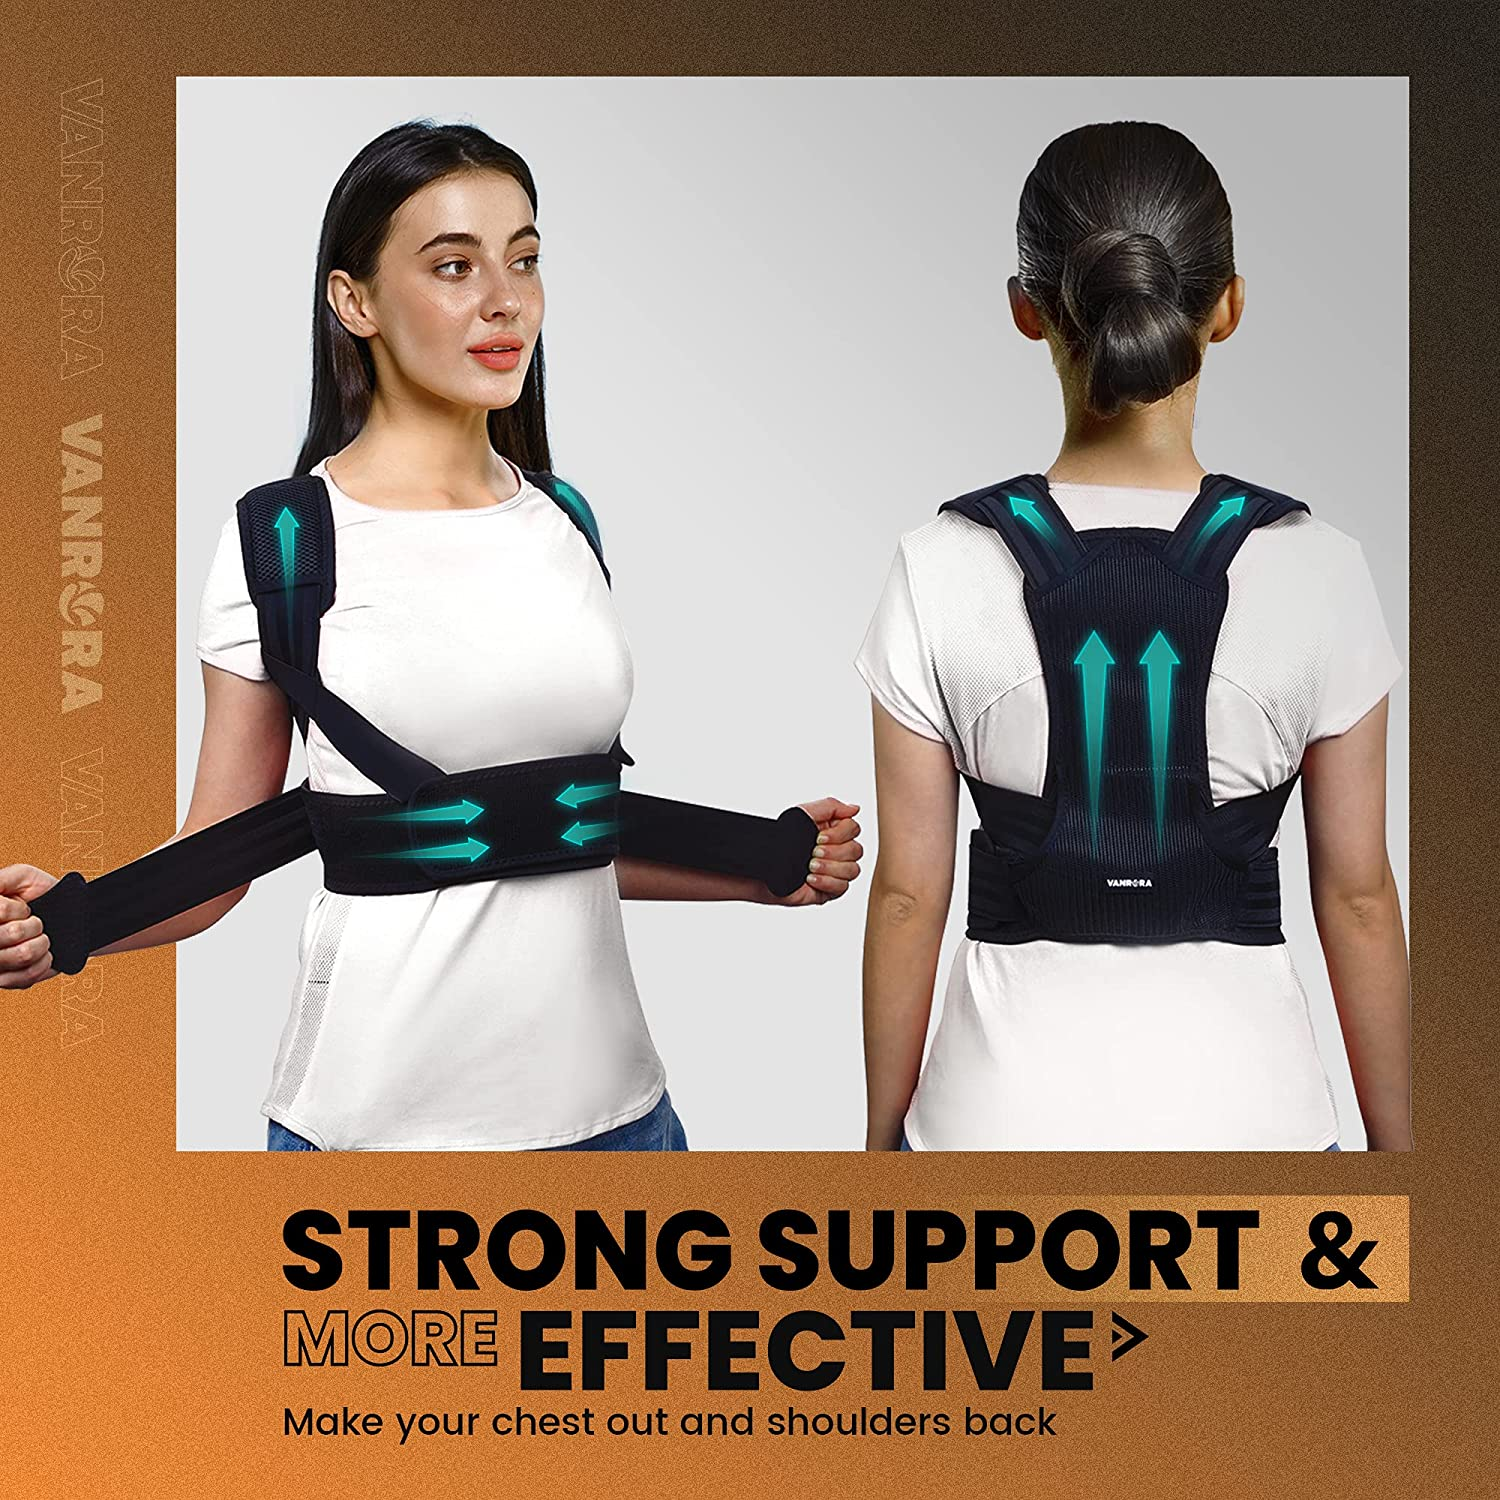 VANRORA Posture Corrector for Women and Men, Back Brace Fully Adjustable & Comfy, Support Straightener for Spine, Back, Neck, Clavicle and Shoulder, Improves Posture and Pain Relief S/M: Industrial & Scientific